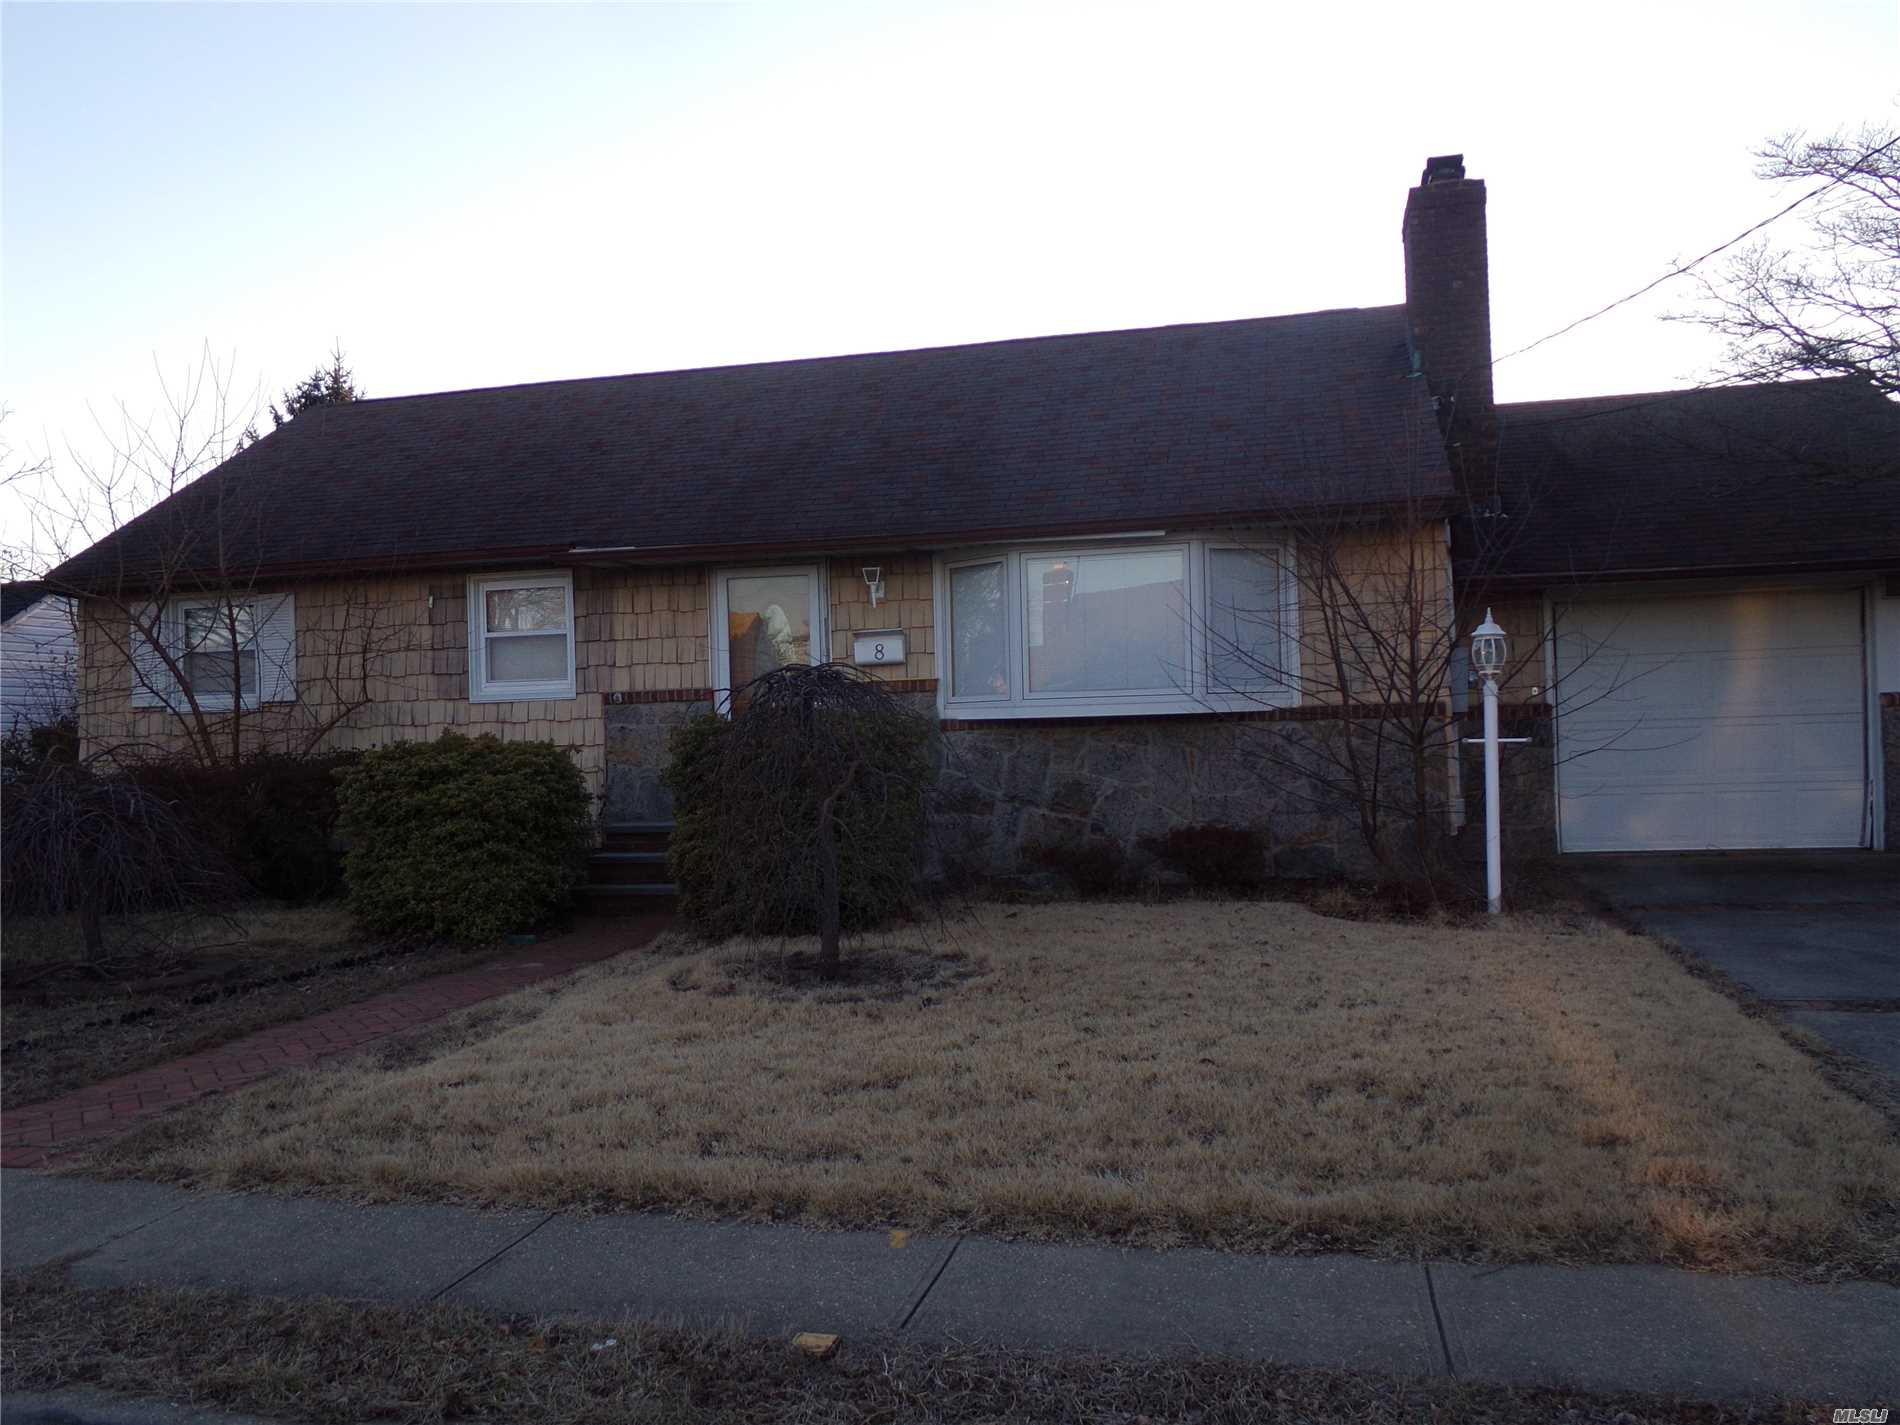 Calling All Investors/Builders.House In Need Of Total Rehab.Nice 75 X 100 (7300 Sq Ft) Lot To Build On.Being Sold As Is .Cash Offers Only.Very Convenient To Train Station, Parkways, Shopping, All.House Already Has Gas & Faces East.Low Low Taxes!!